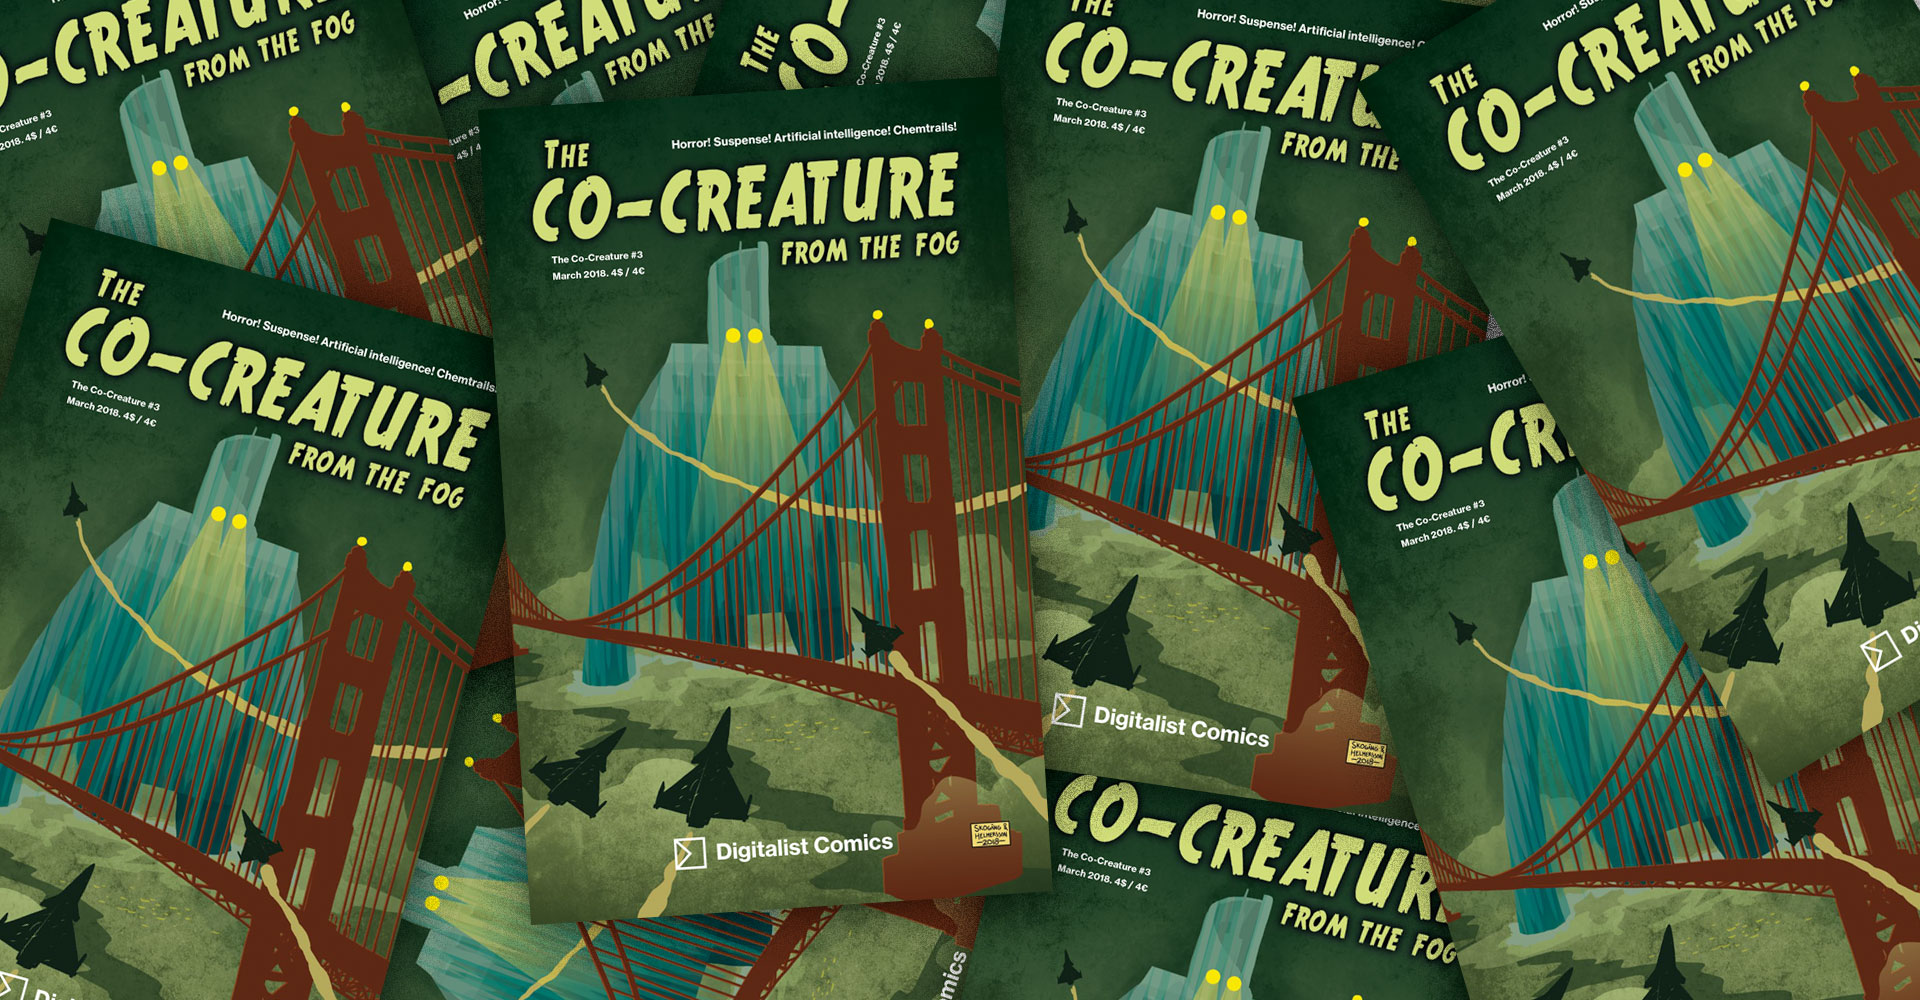 The Co-Creature